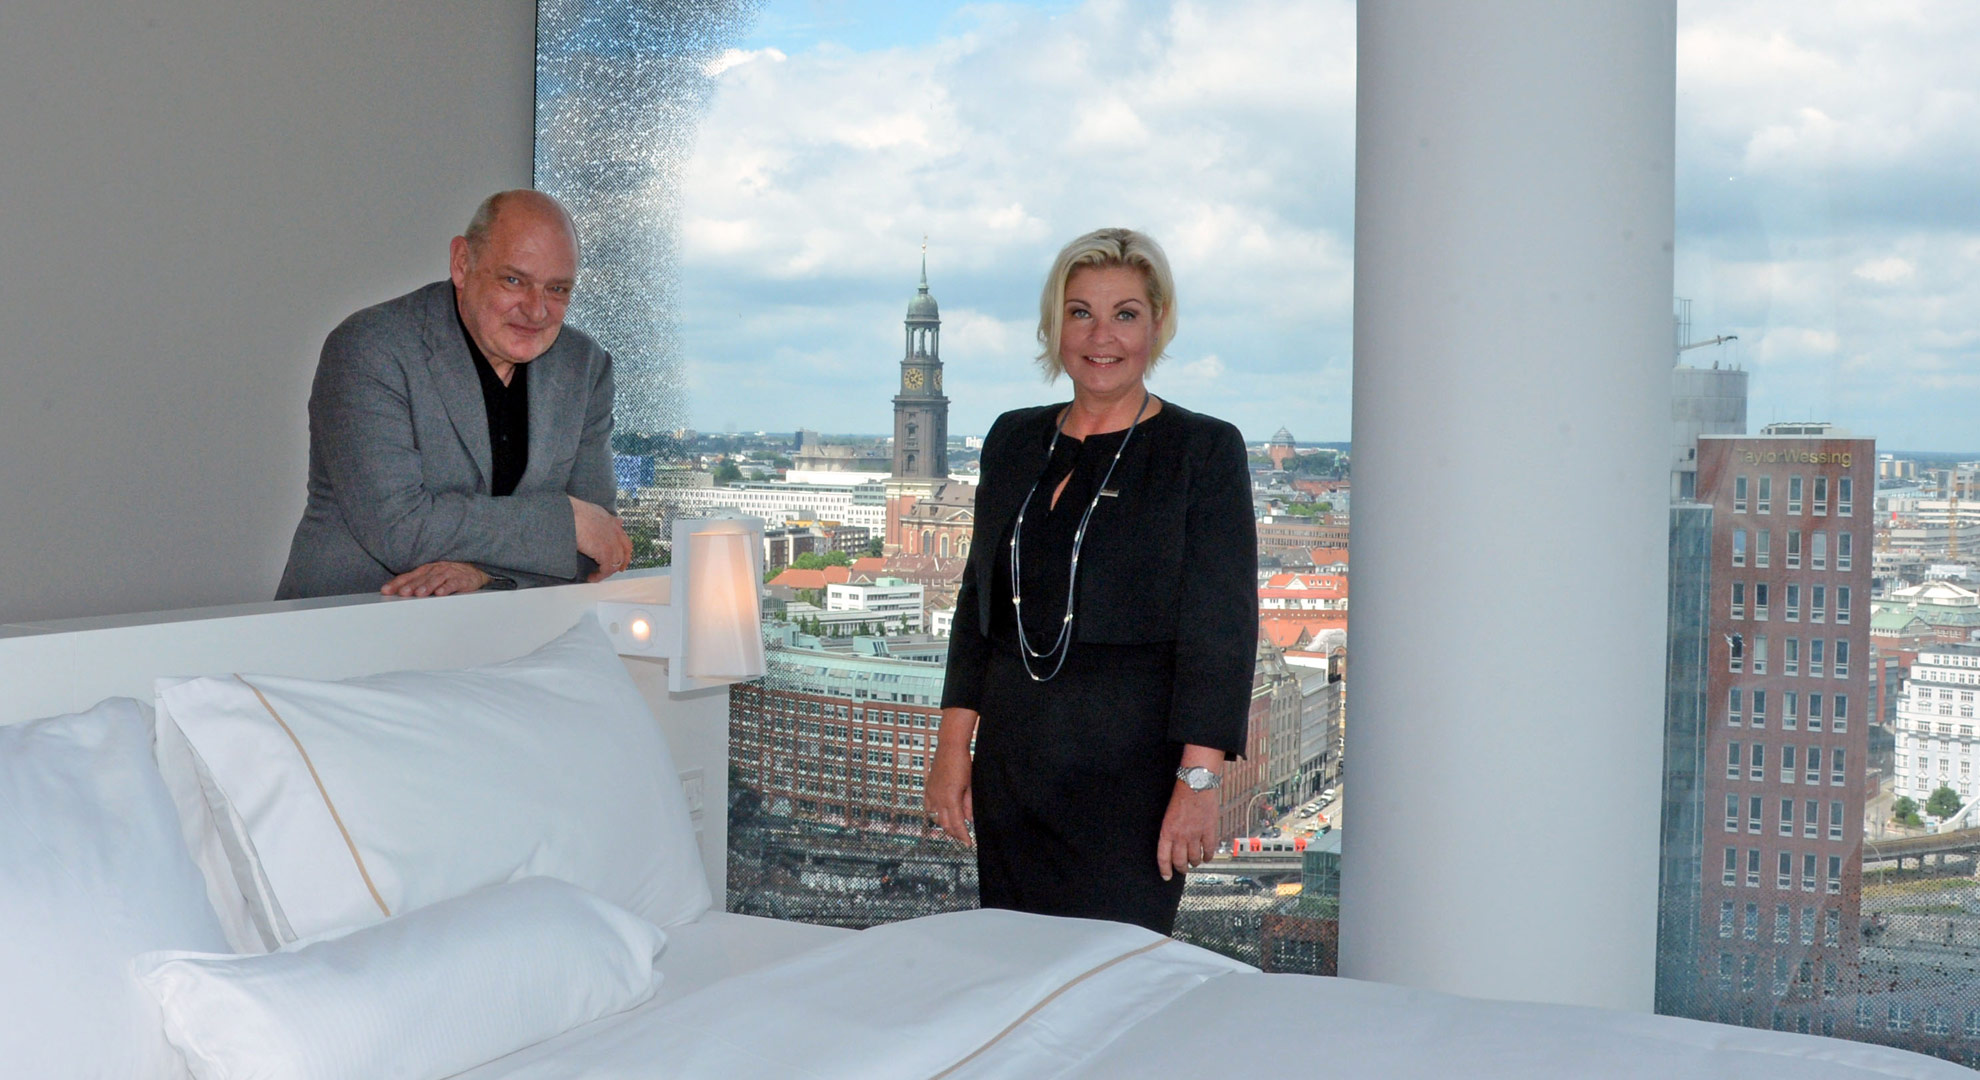 exklusive einblicke westin hotel hamburg. Black Bedroom Furniture Sets. Home Design Ideas